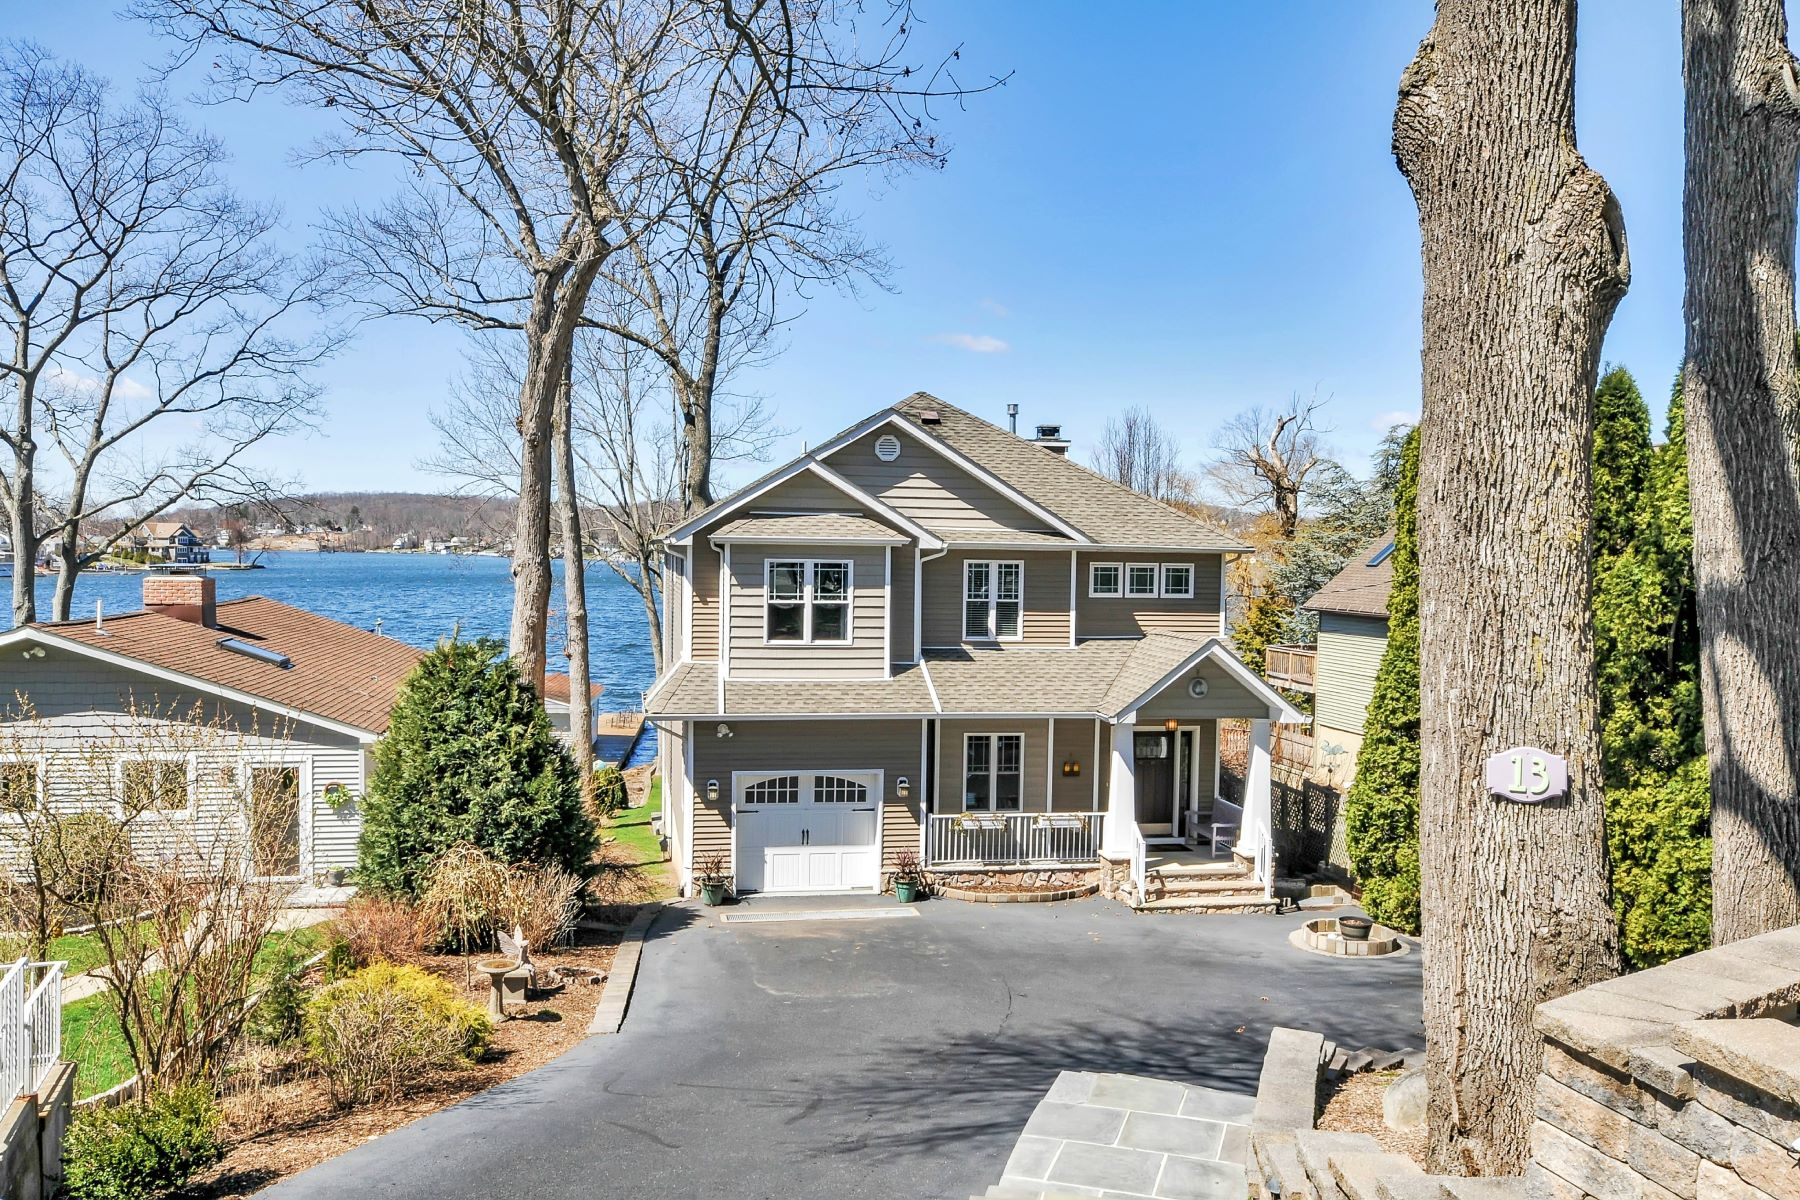 Single Family Home for Sale at Amazing lakefront views and sunsets all year long. 13 Bertrand Island Road Mount Arlington, New Jersey 07856 United States